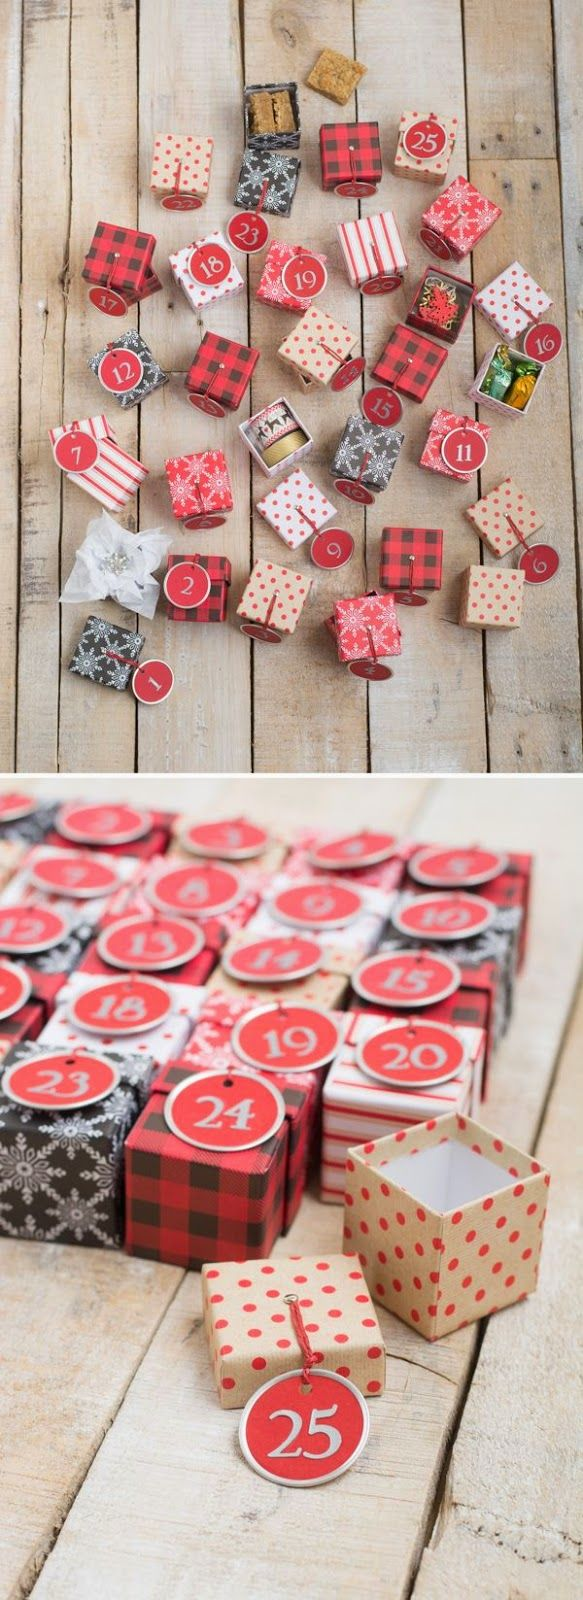 DIY Advent Calendar with Mini Boxes